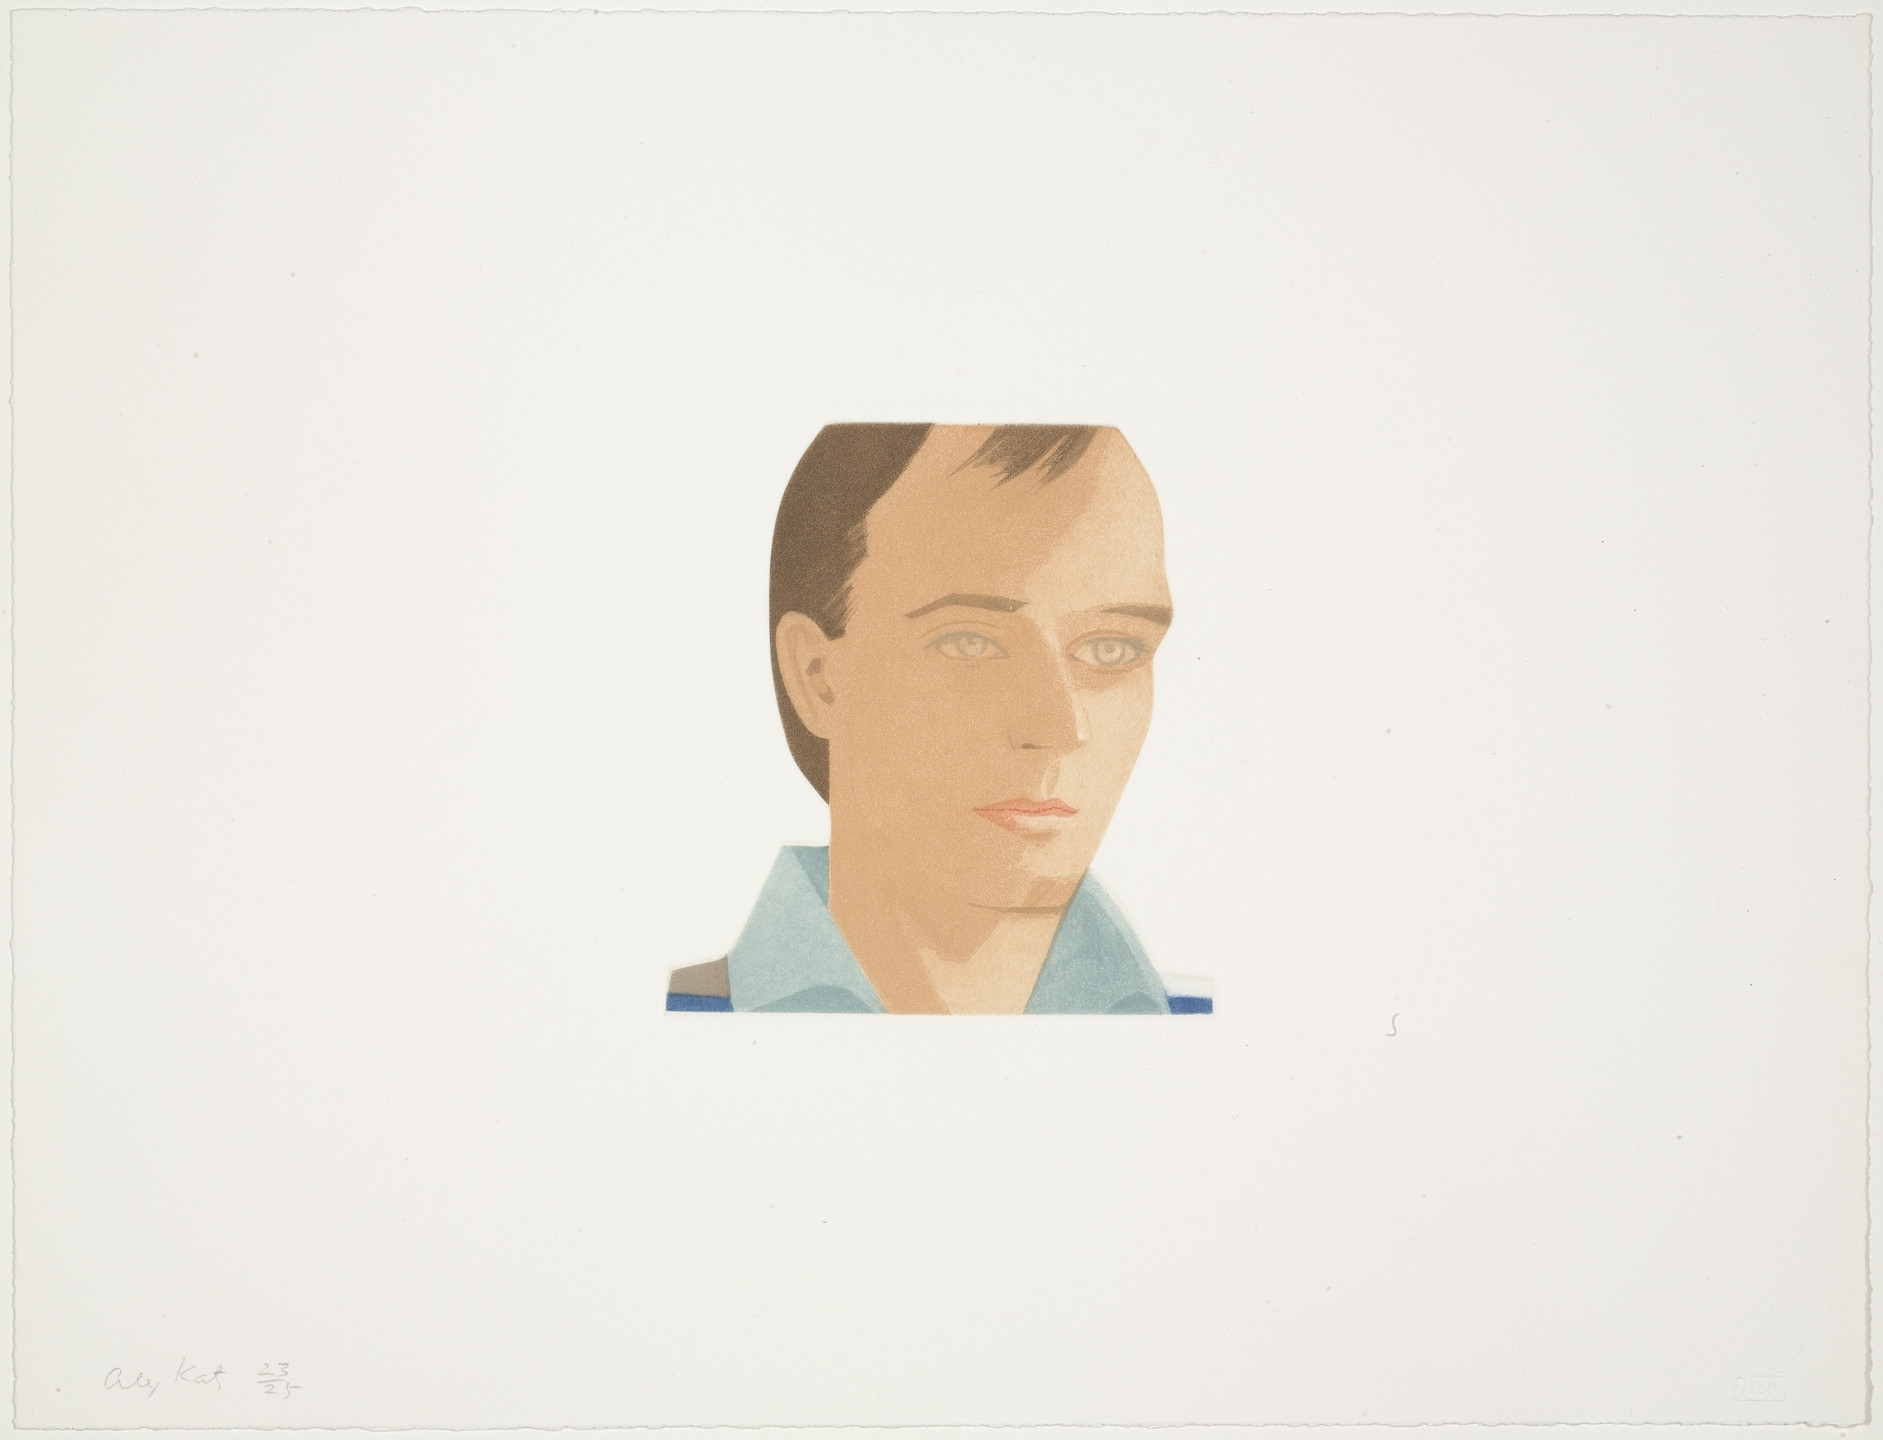 Alex Katz. Rene Ricard from Face of the Poet. 1978